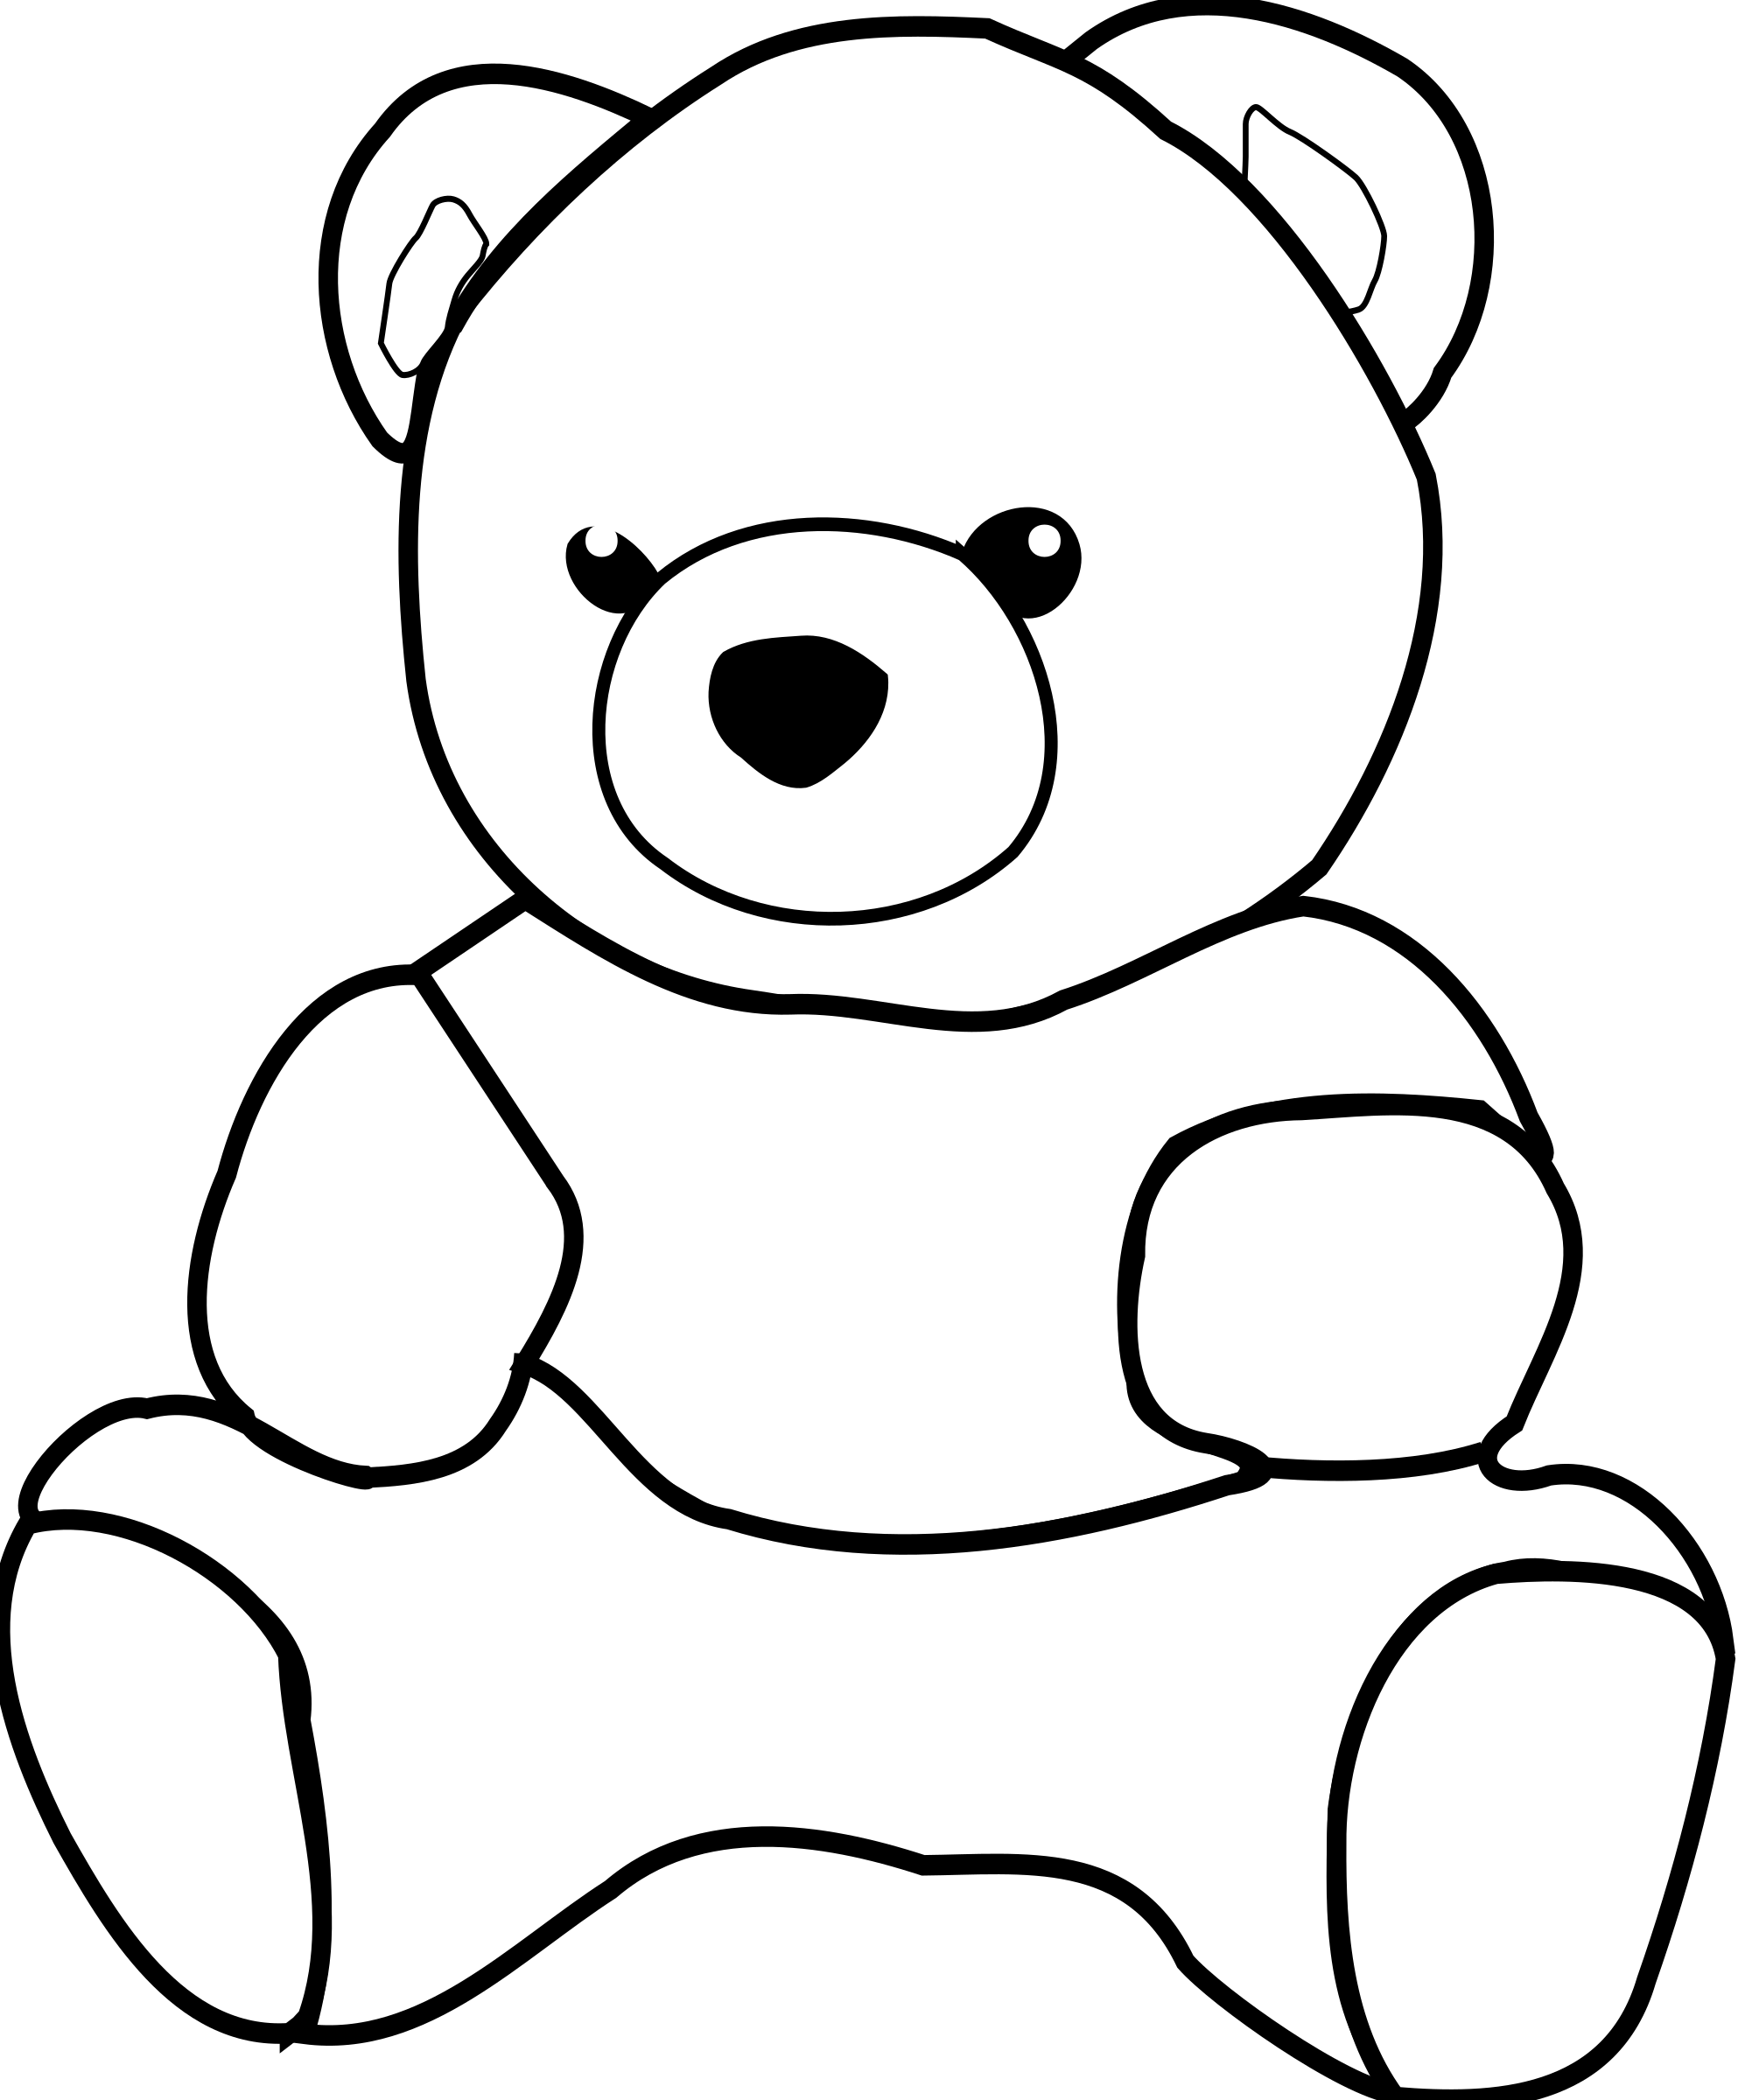 image freeuse download Teddy bear black and white clipart. Big image png